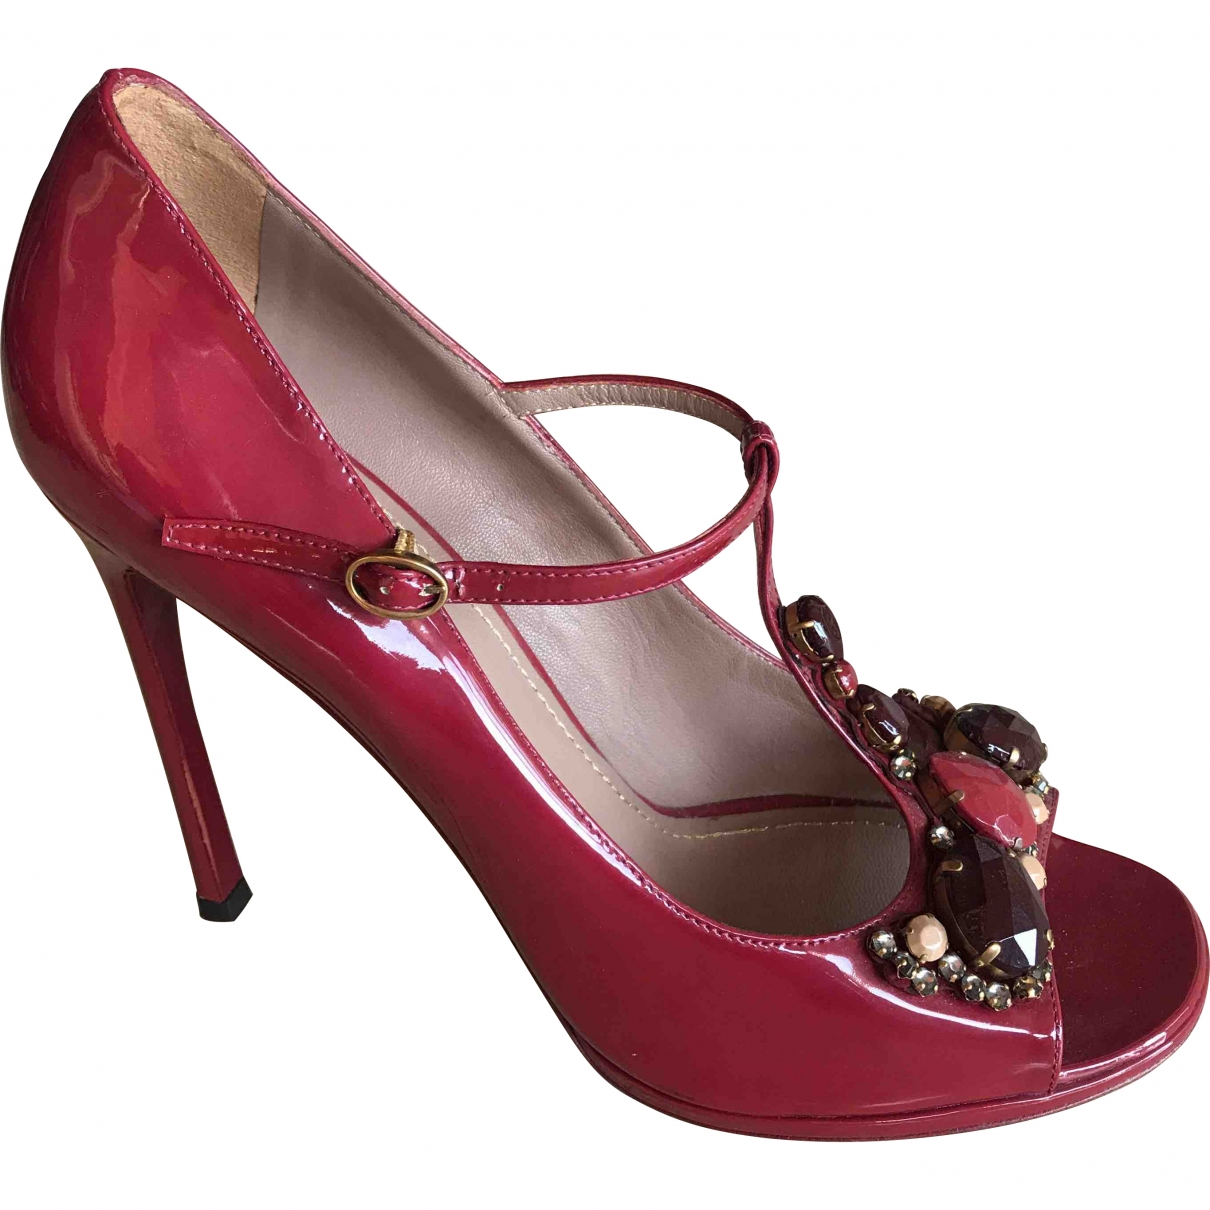 Yves Saint Laurent \N Burgundy Patent leather Heels for Women 41 EU